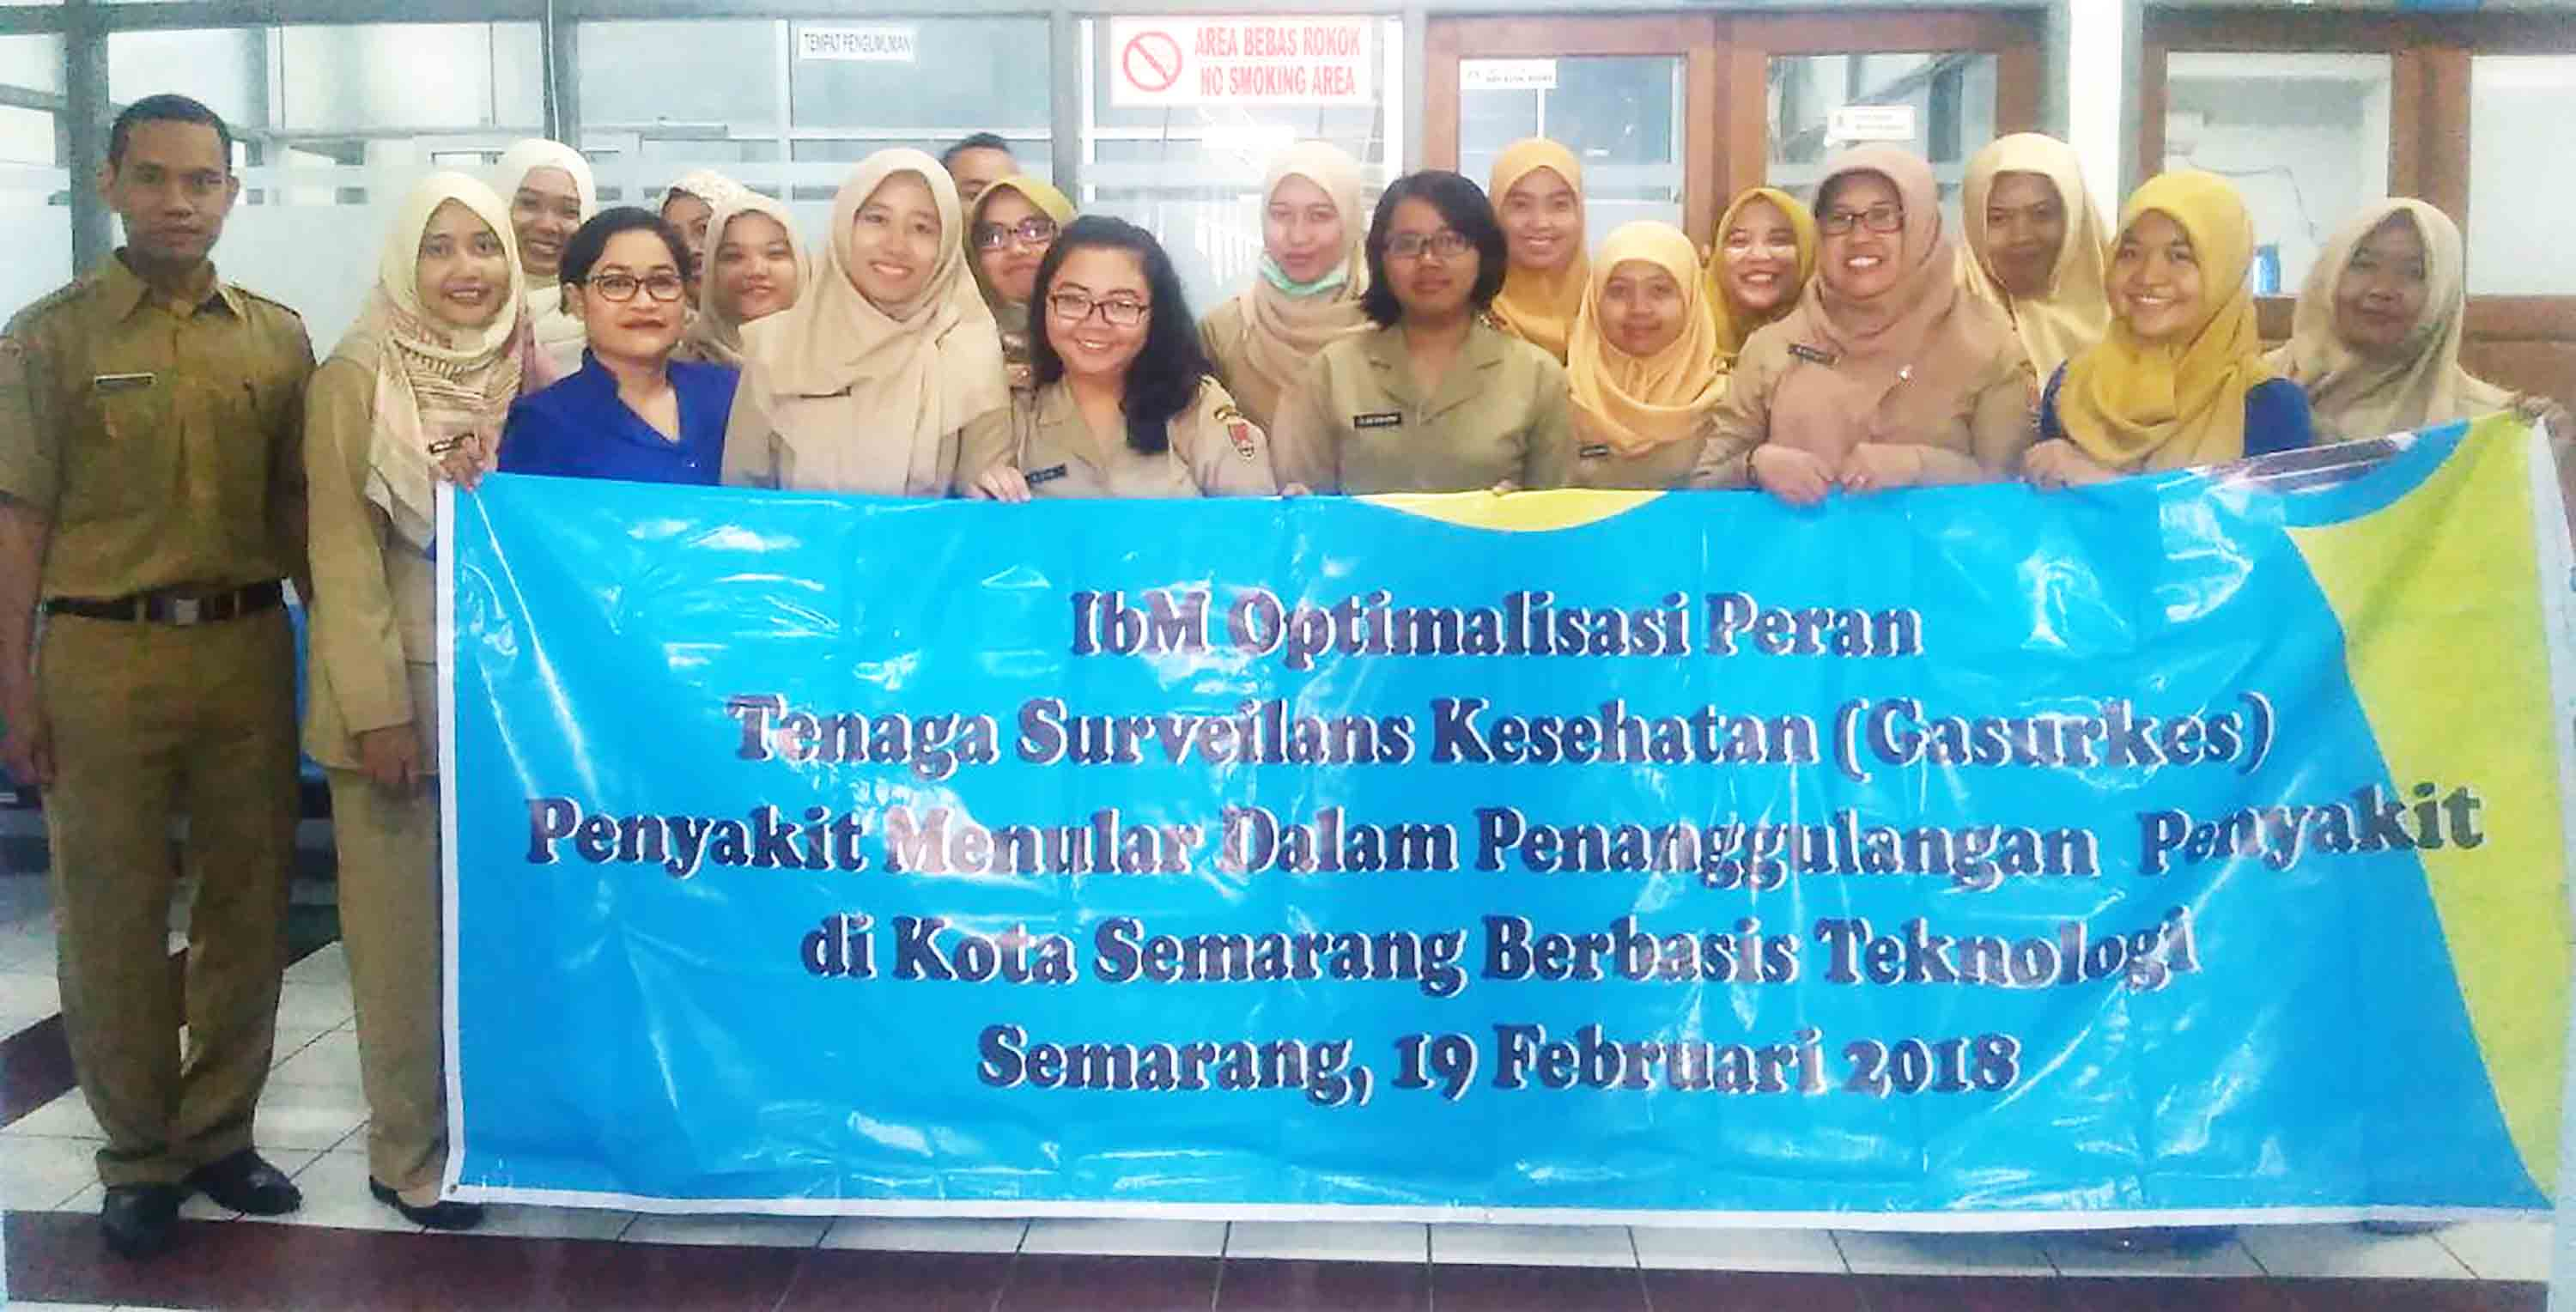 THE OPTIMALIZATION OF GASURKES' ROLE IN PREVENTING TUBERCULOSIS IN SEMARANG